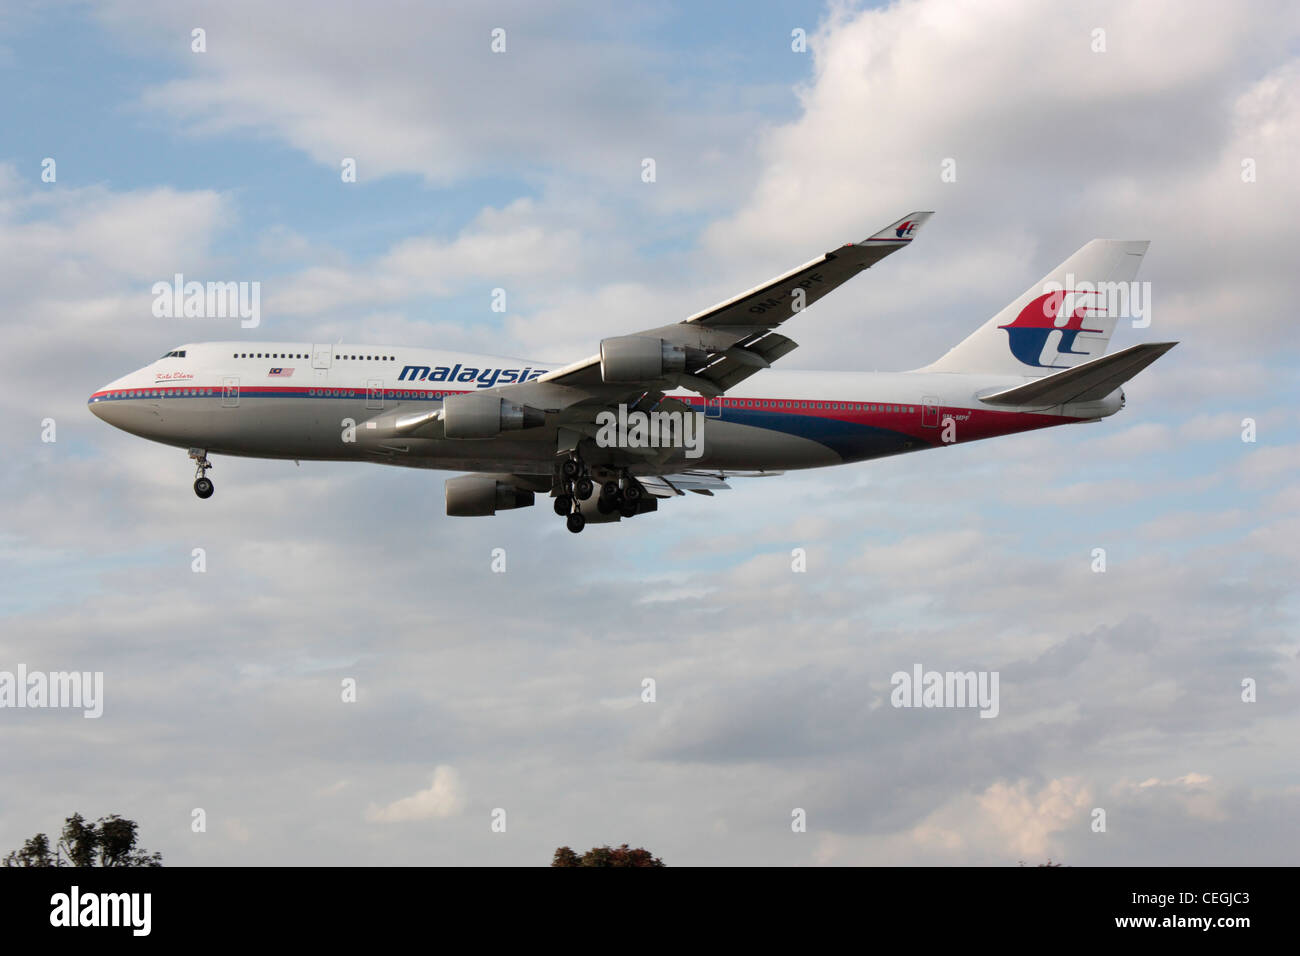 Malaysia Airlines Boeing 747-400 jumbo jet airliner on arrival at London Heathrow. Side view. Stock Photo